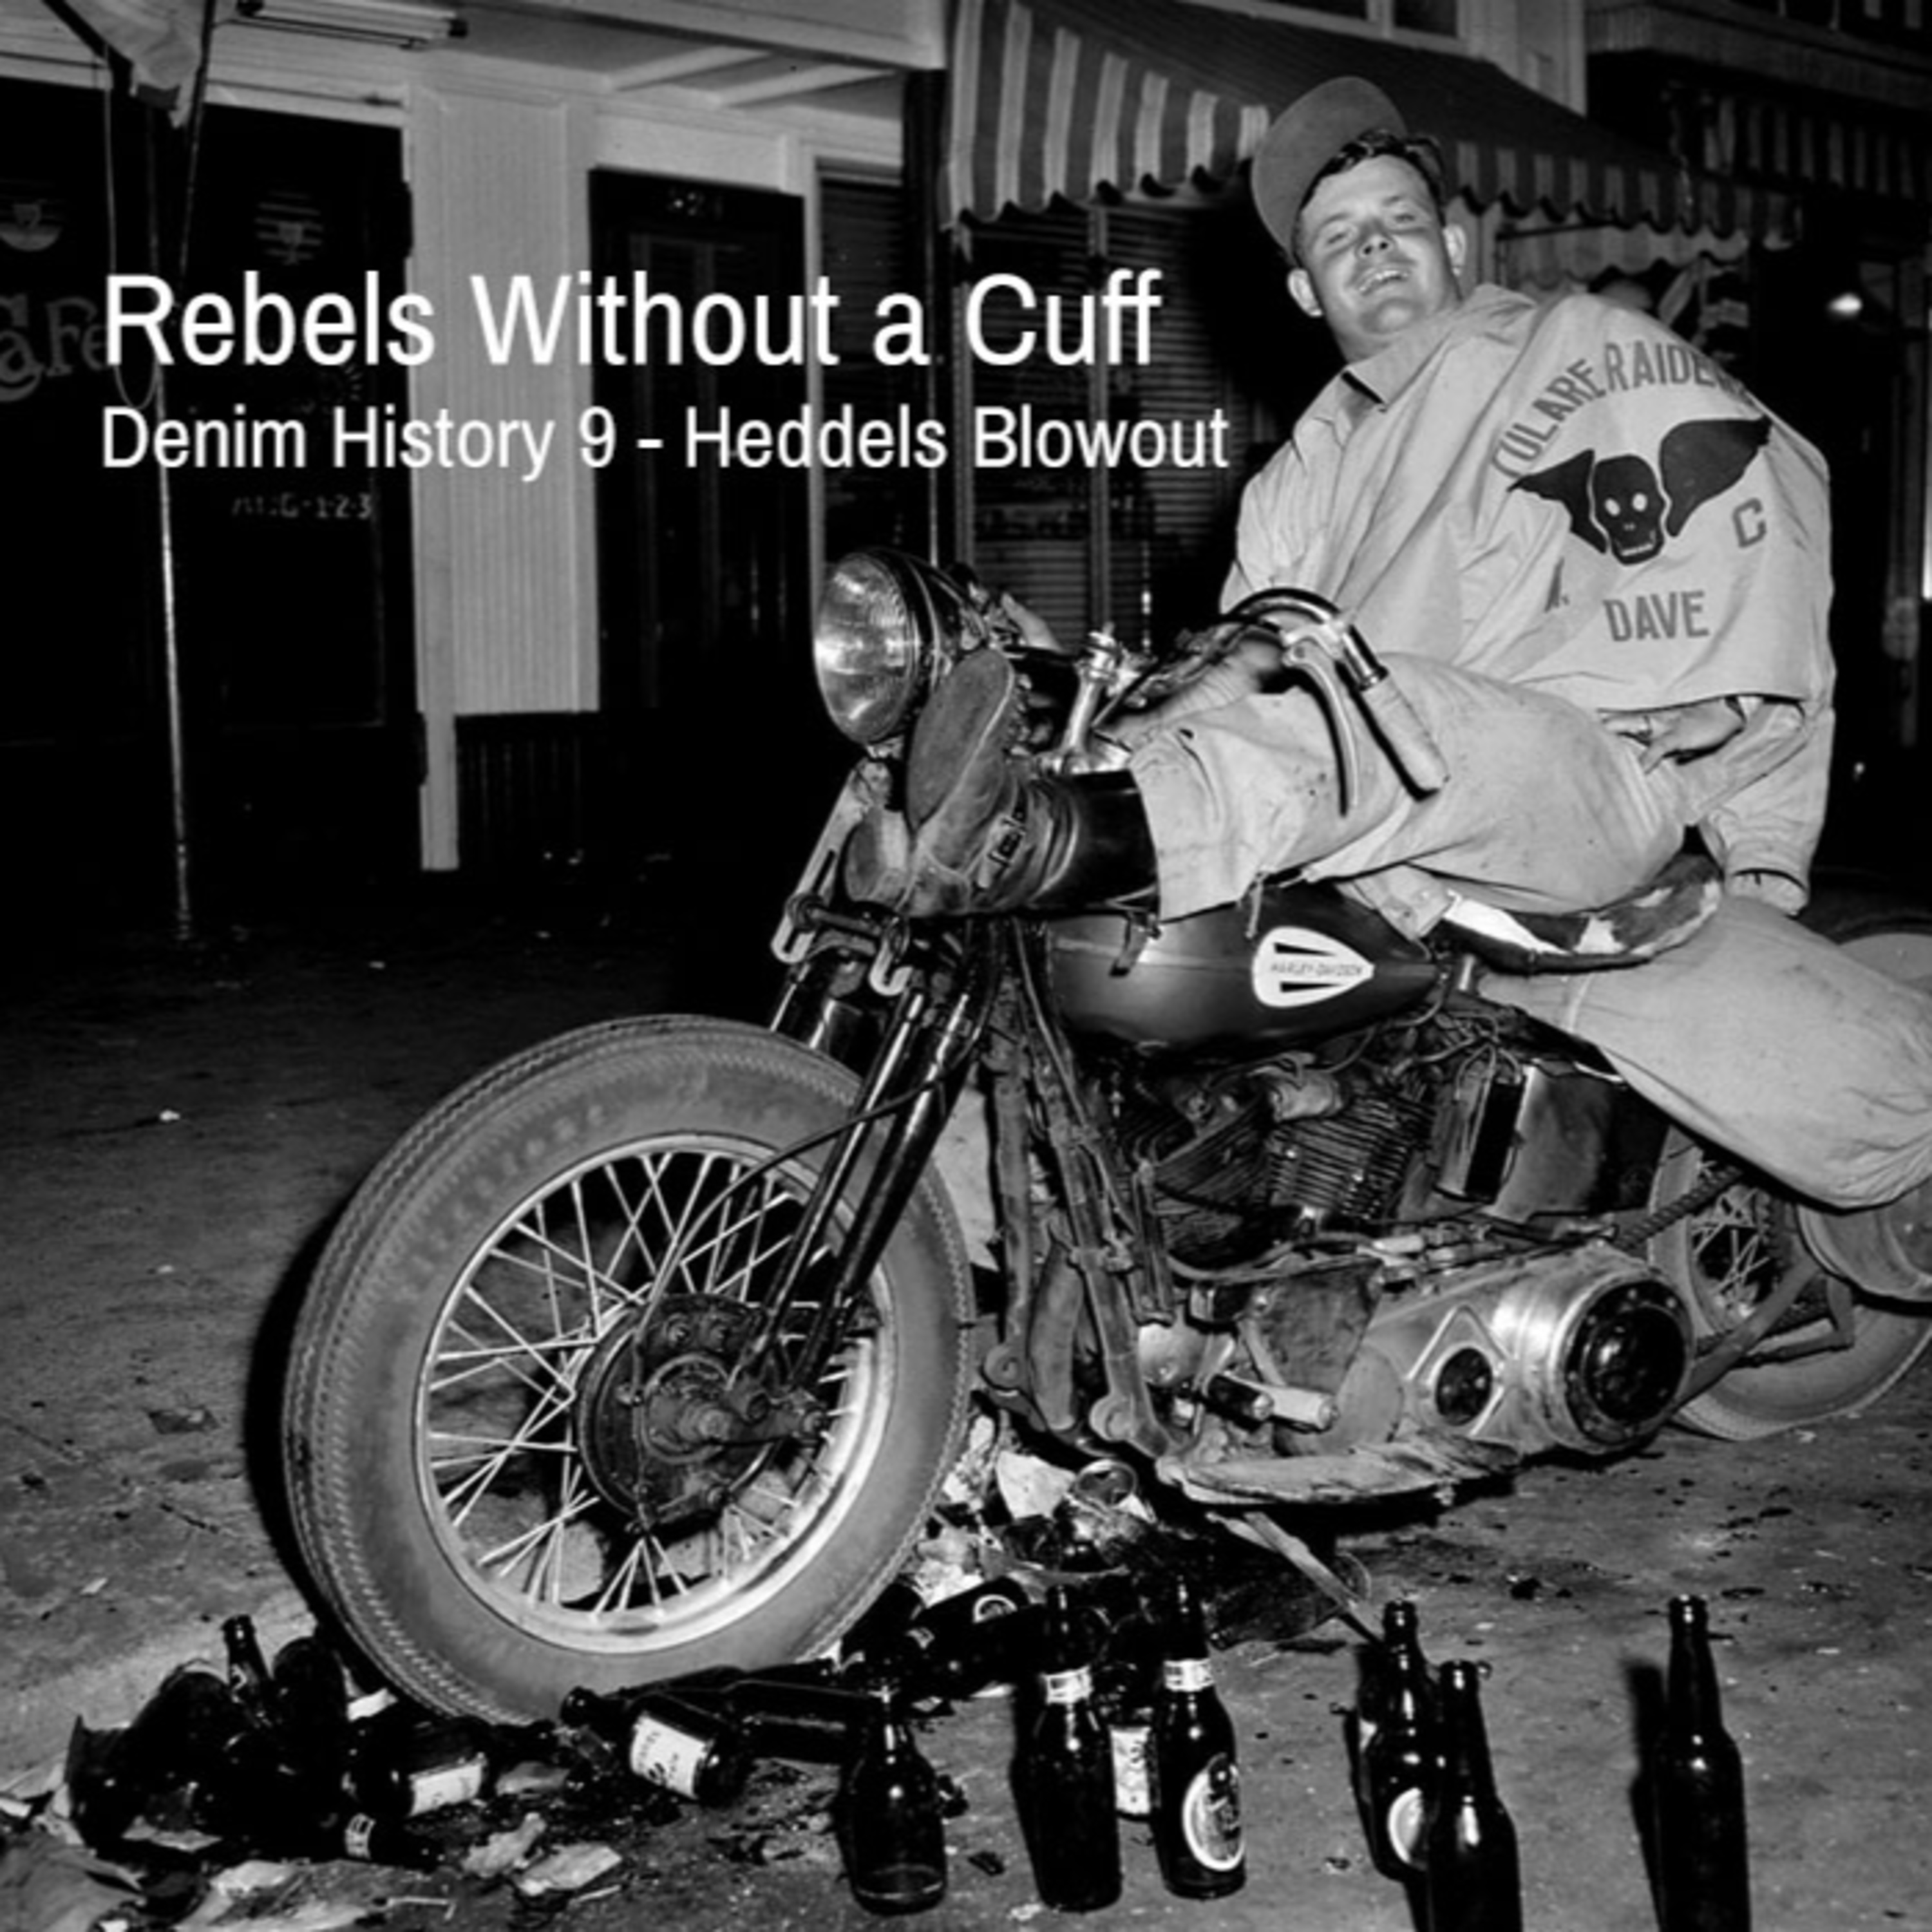 22 - Denim History pt. 9; Rebels Without a Cuff